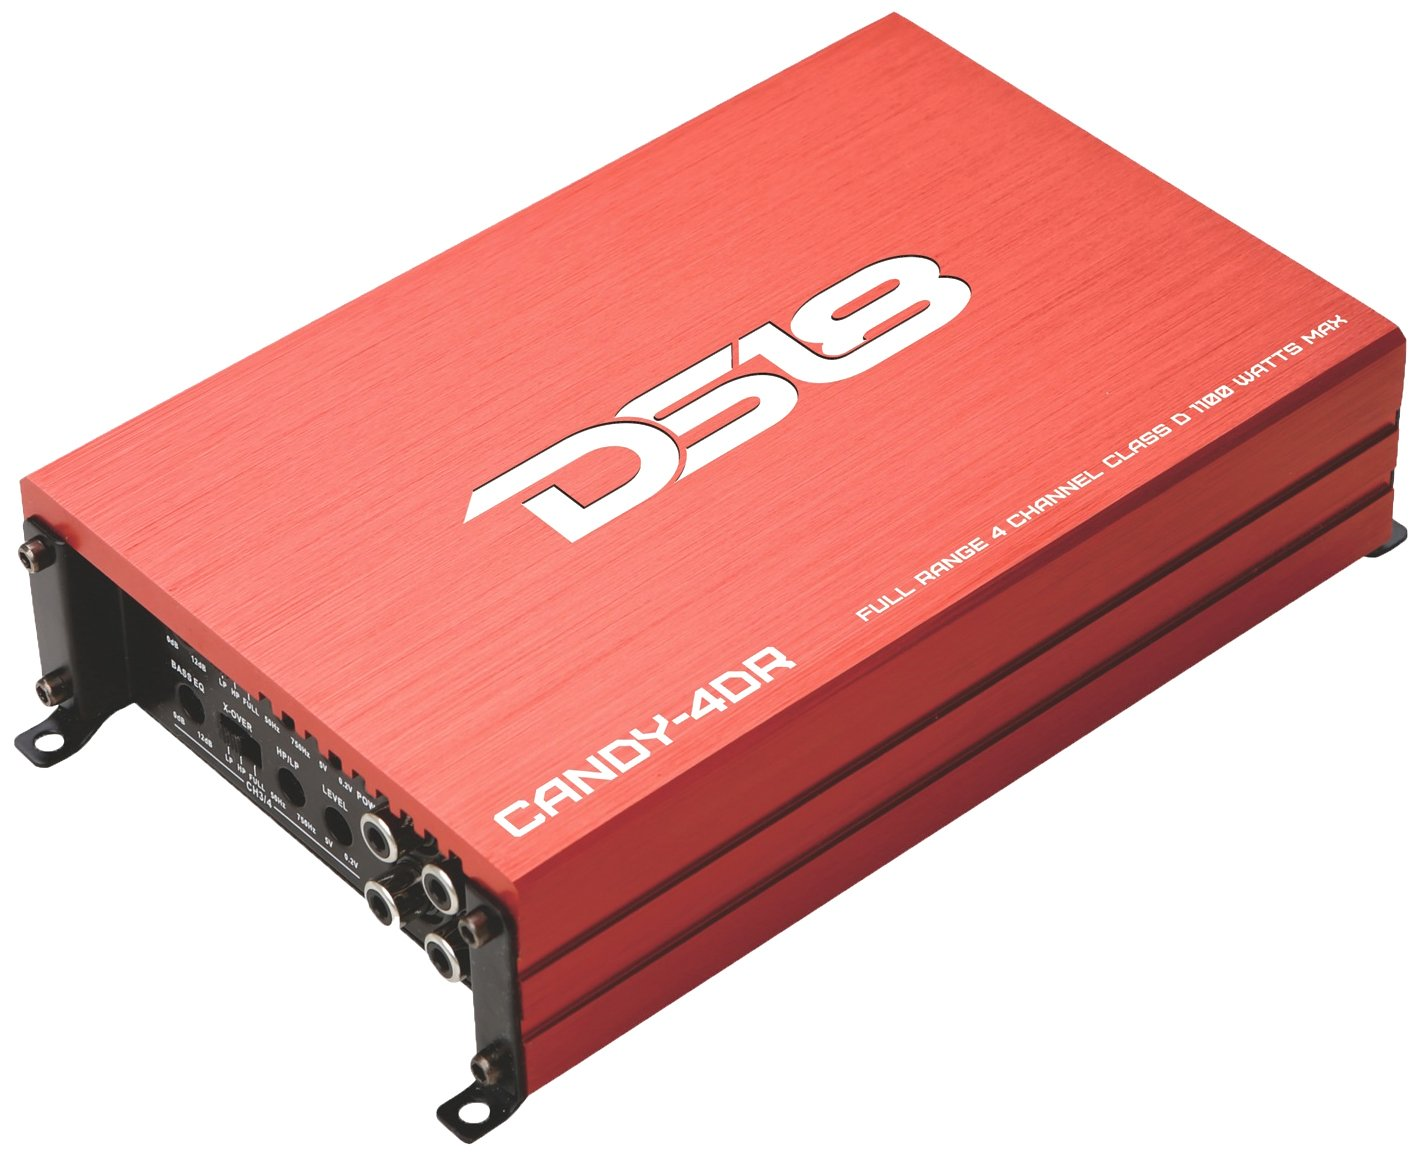 Ds18 Candy 2dr Full Range 2 Channel Class D 1000 Watts Sra5002 500w Car Power Amplifier Amp 8 Gauge Wiring Kit Max Mini Red Electronics